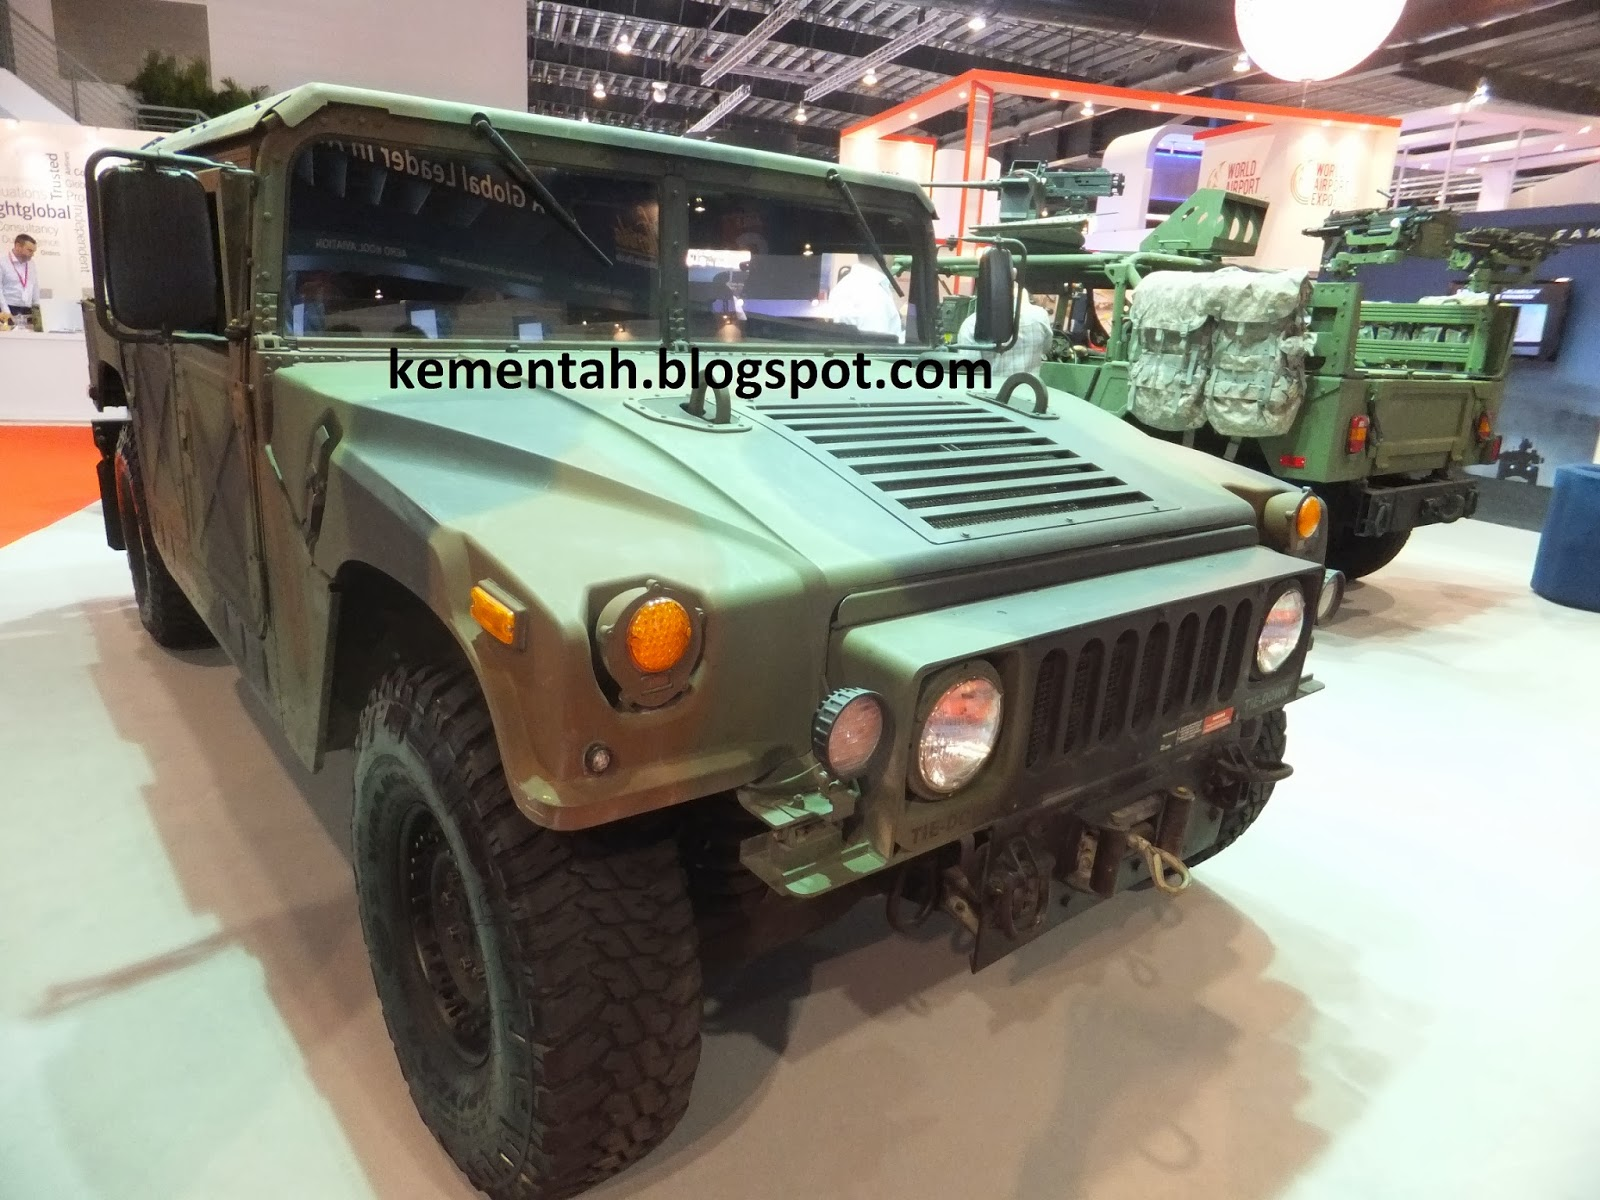 Malaysian armed forces expected to strengthen stable of 4x4 vehicles